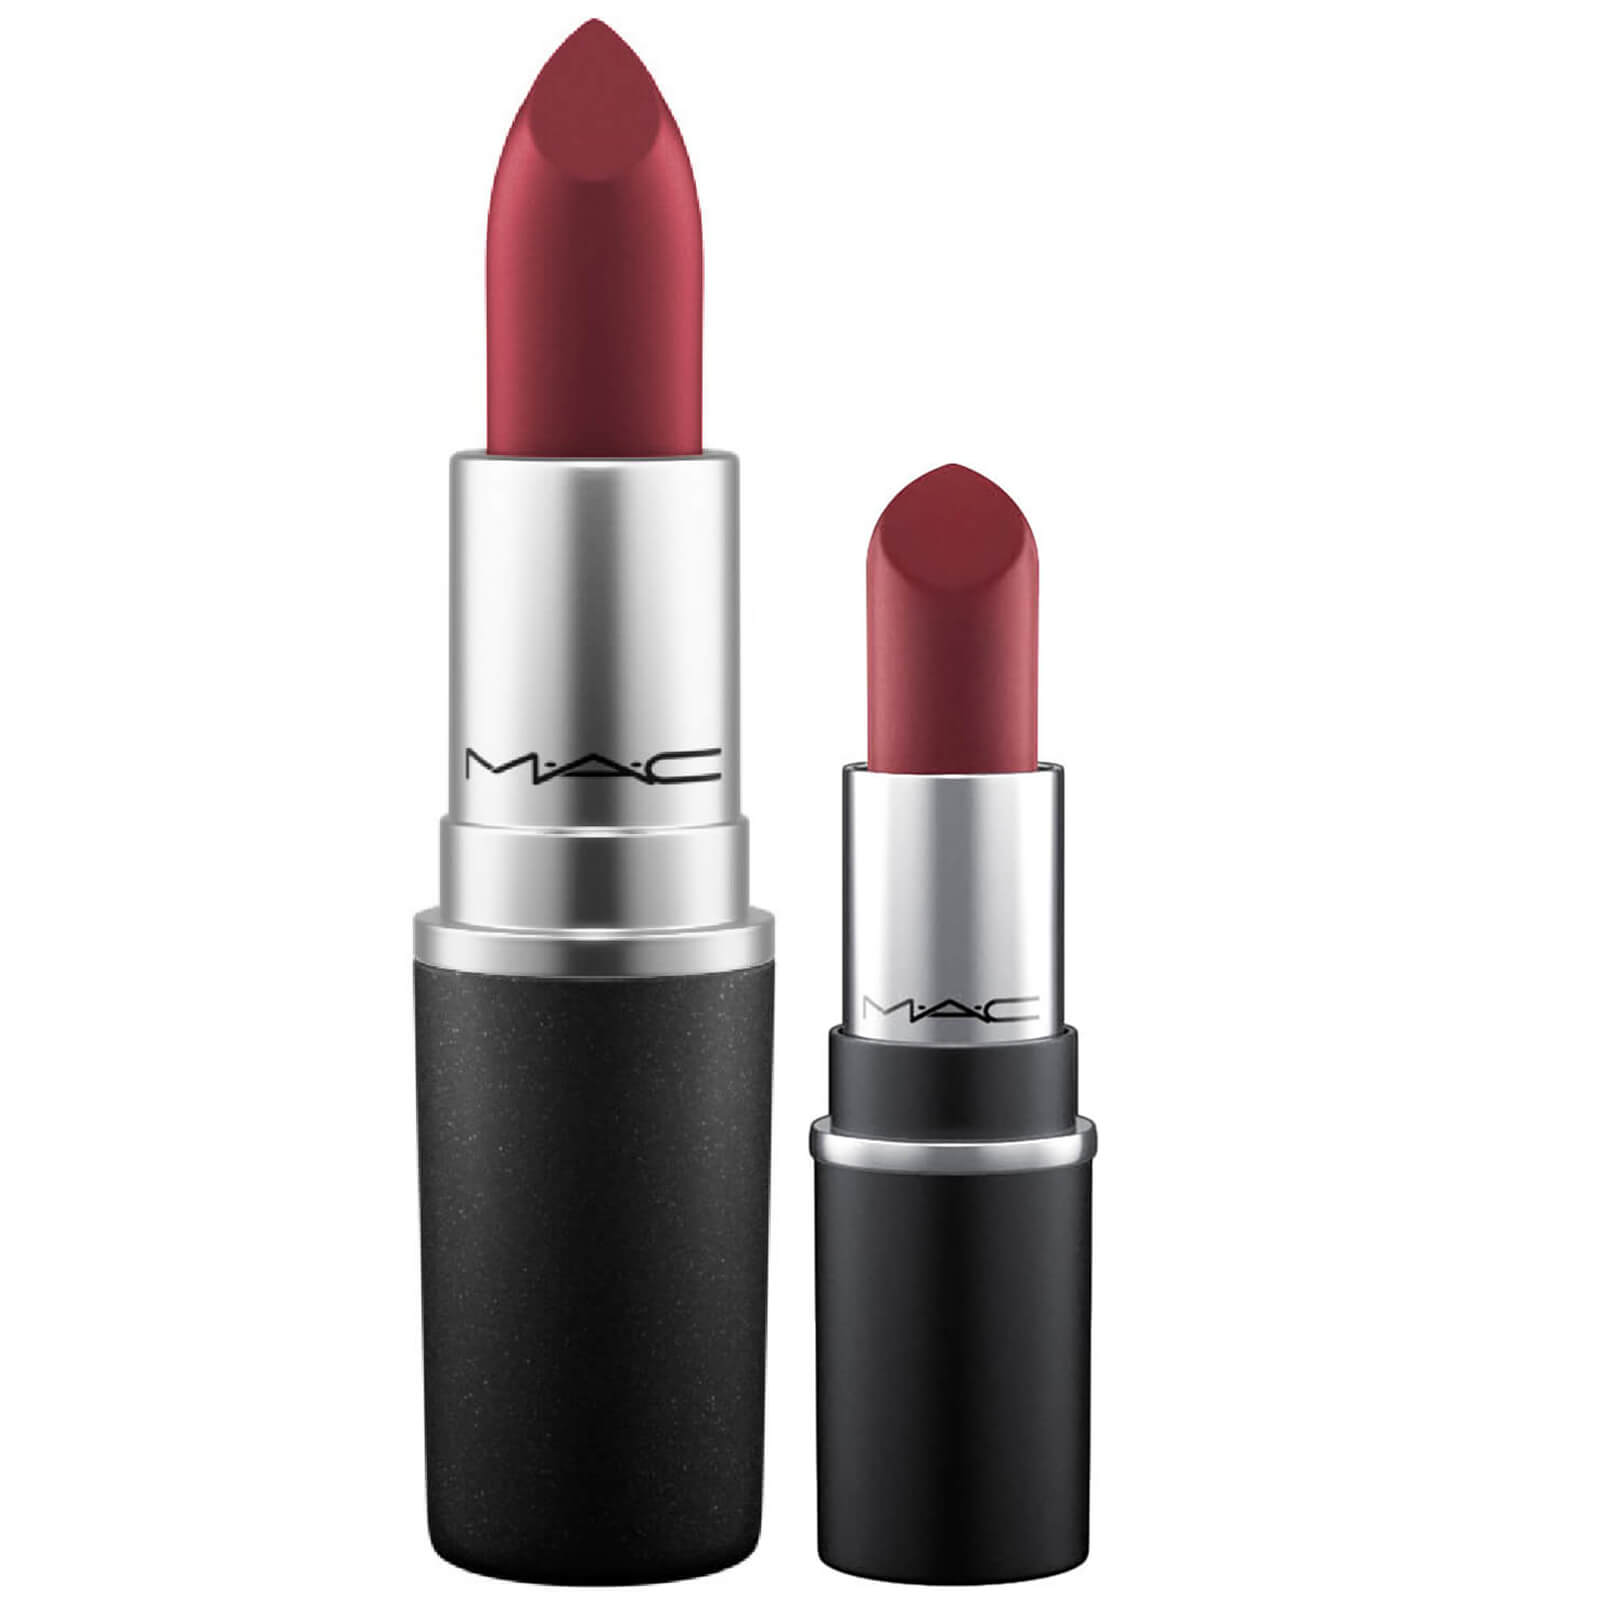 MAC Diva Lipstick Bundle